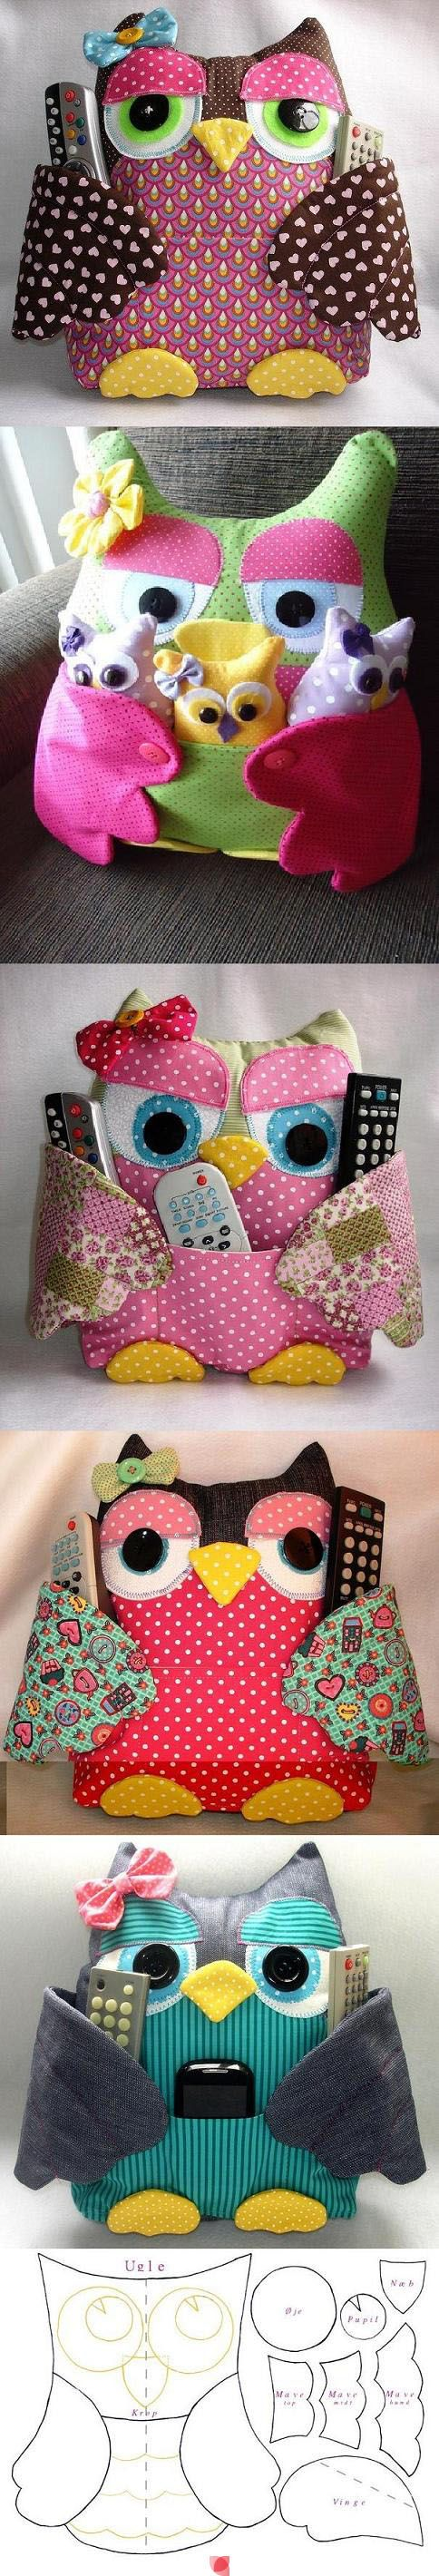 remote control caddy owl pillow <3